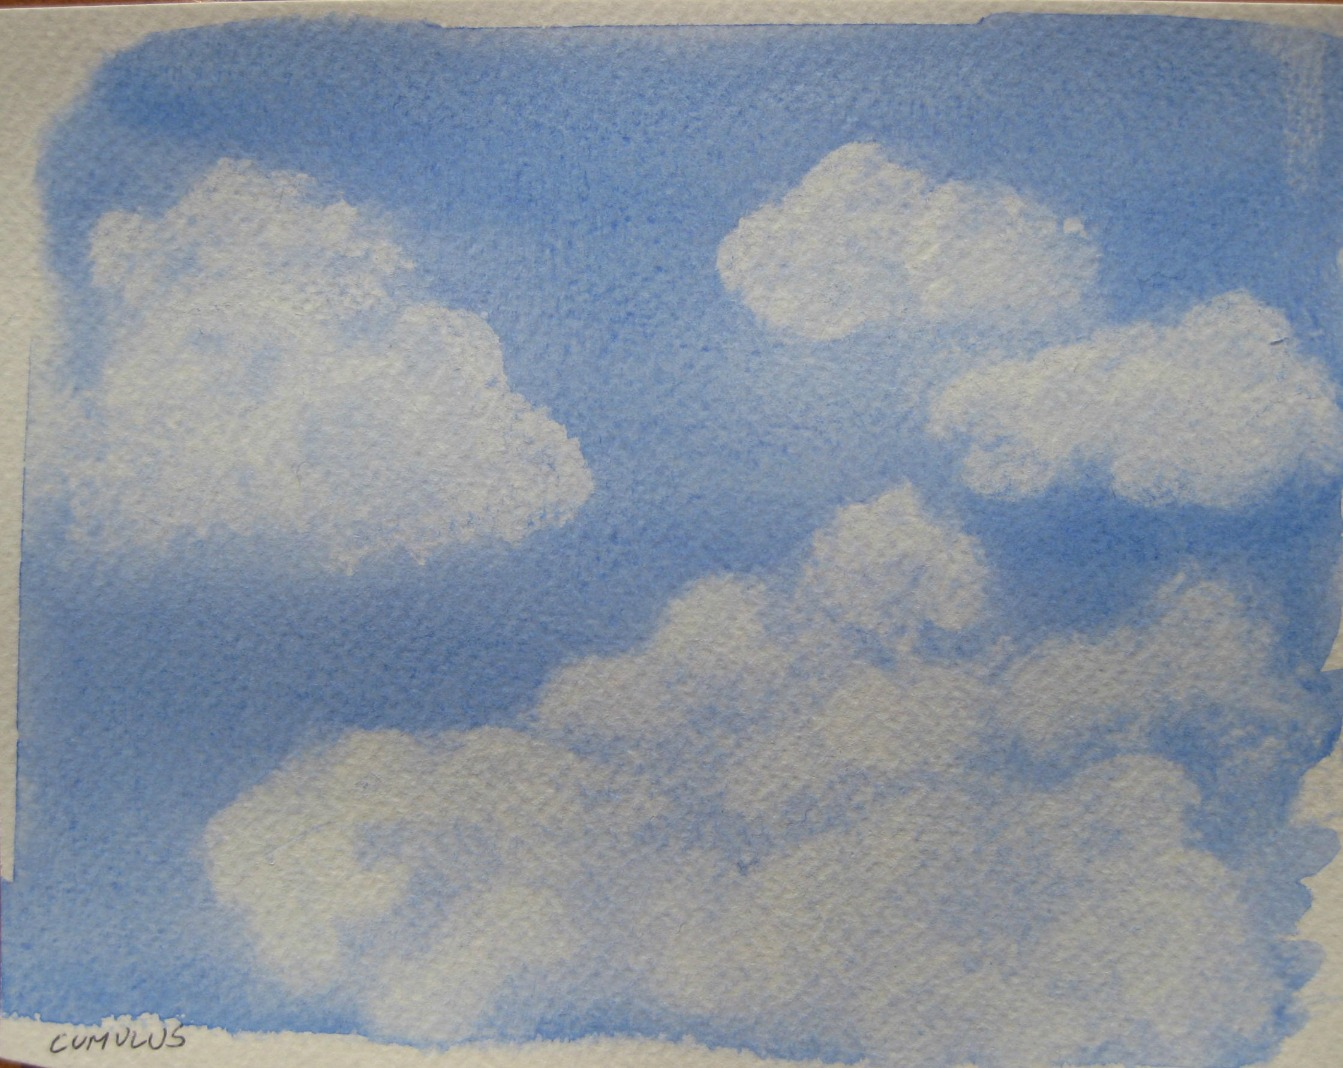 Different Kinds Of Clouds